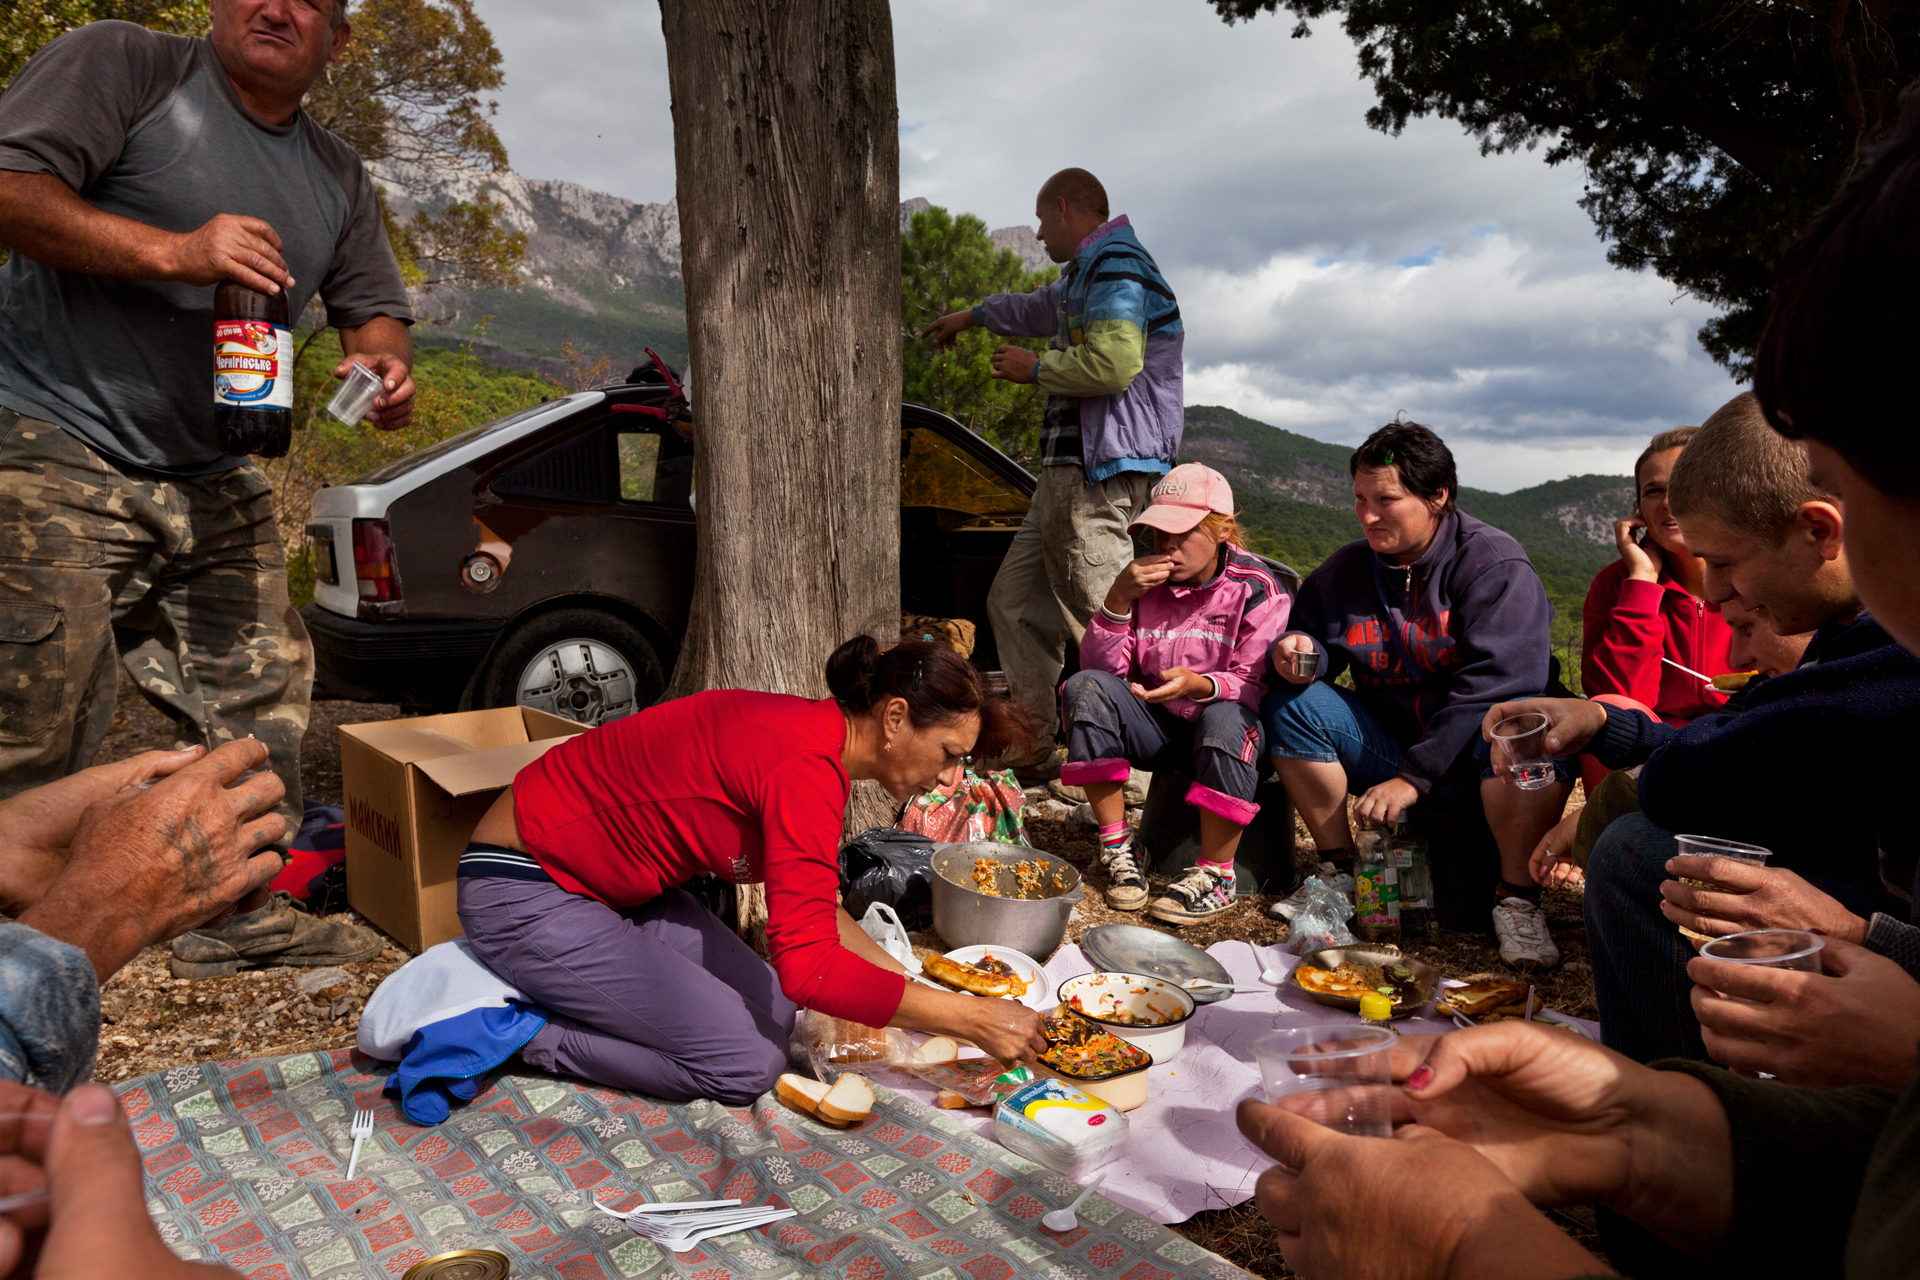 A group of hired grape pickers break for a bucolic lunch in the vineyards near the Crimean coastline.  Near Yalta, Crimea